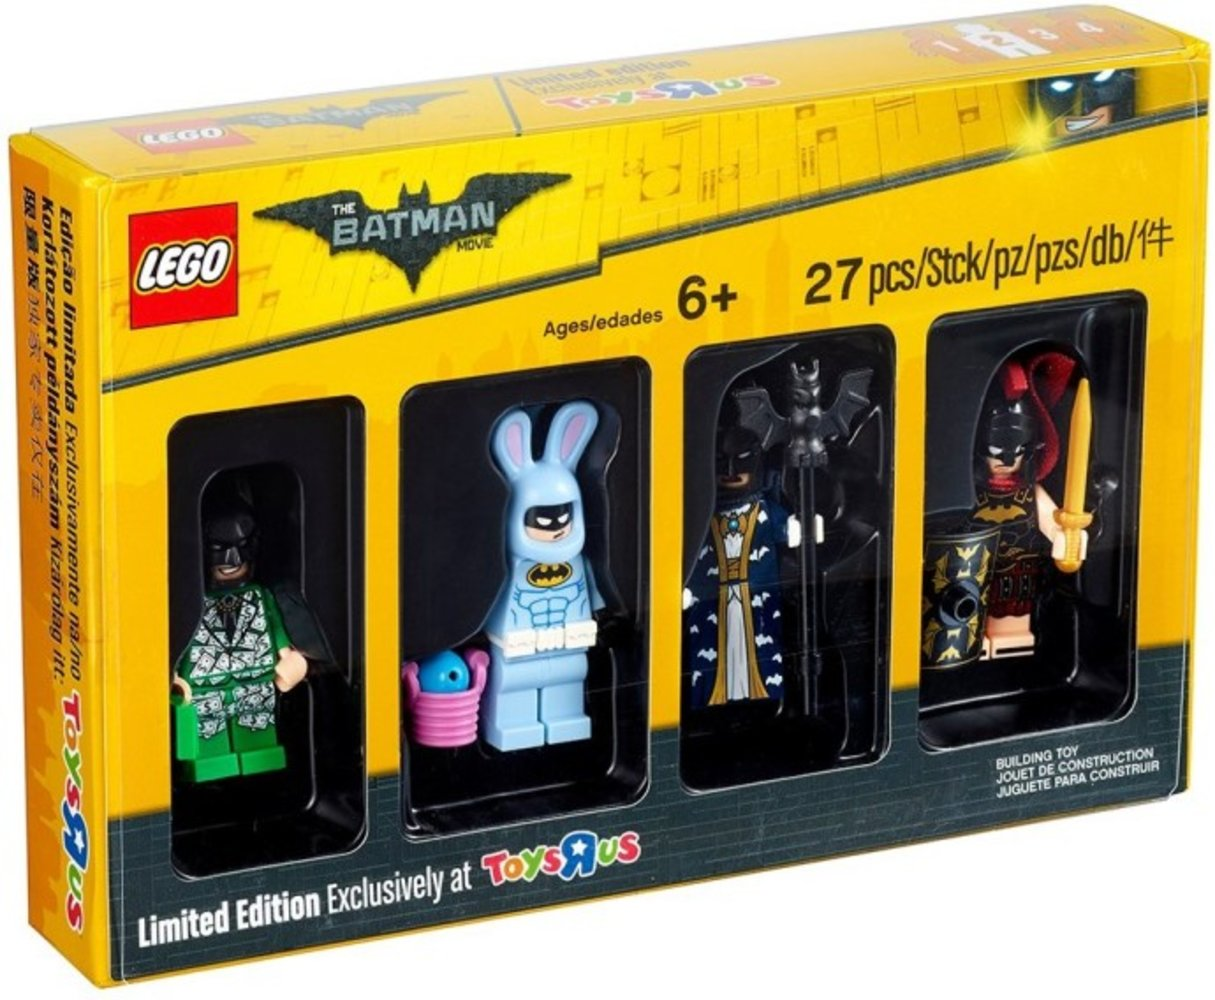 Collectible Minifigures - The Lego Batman Movie